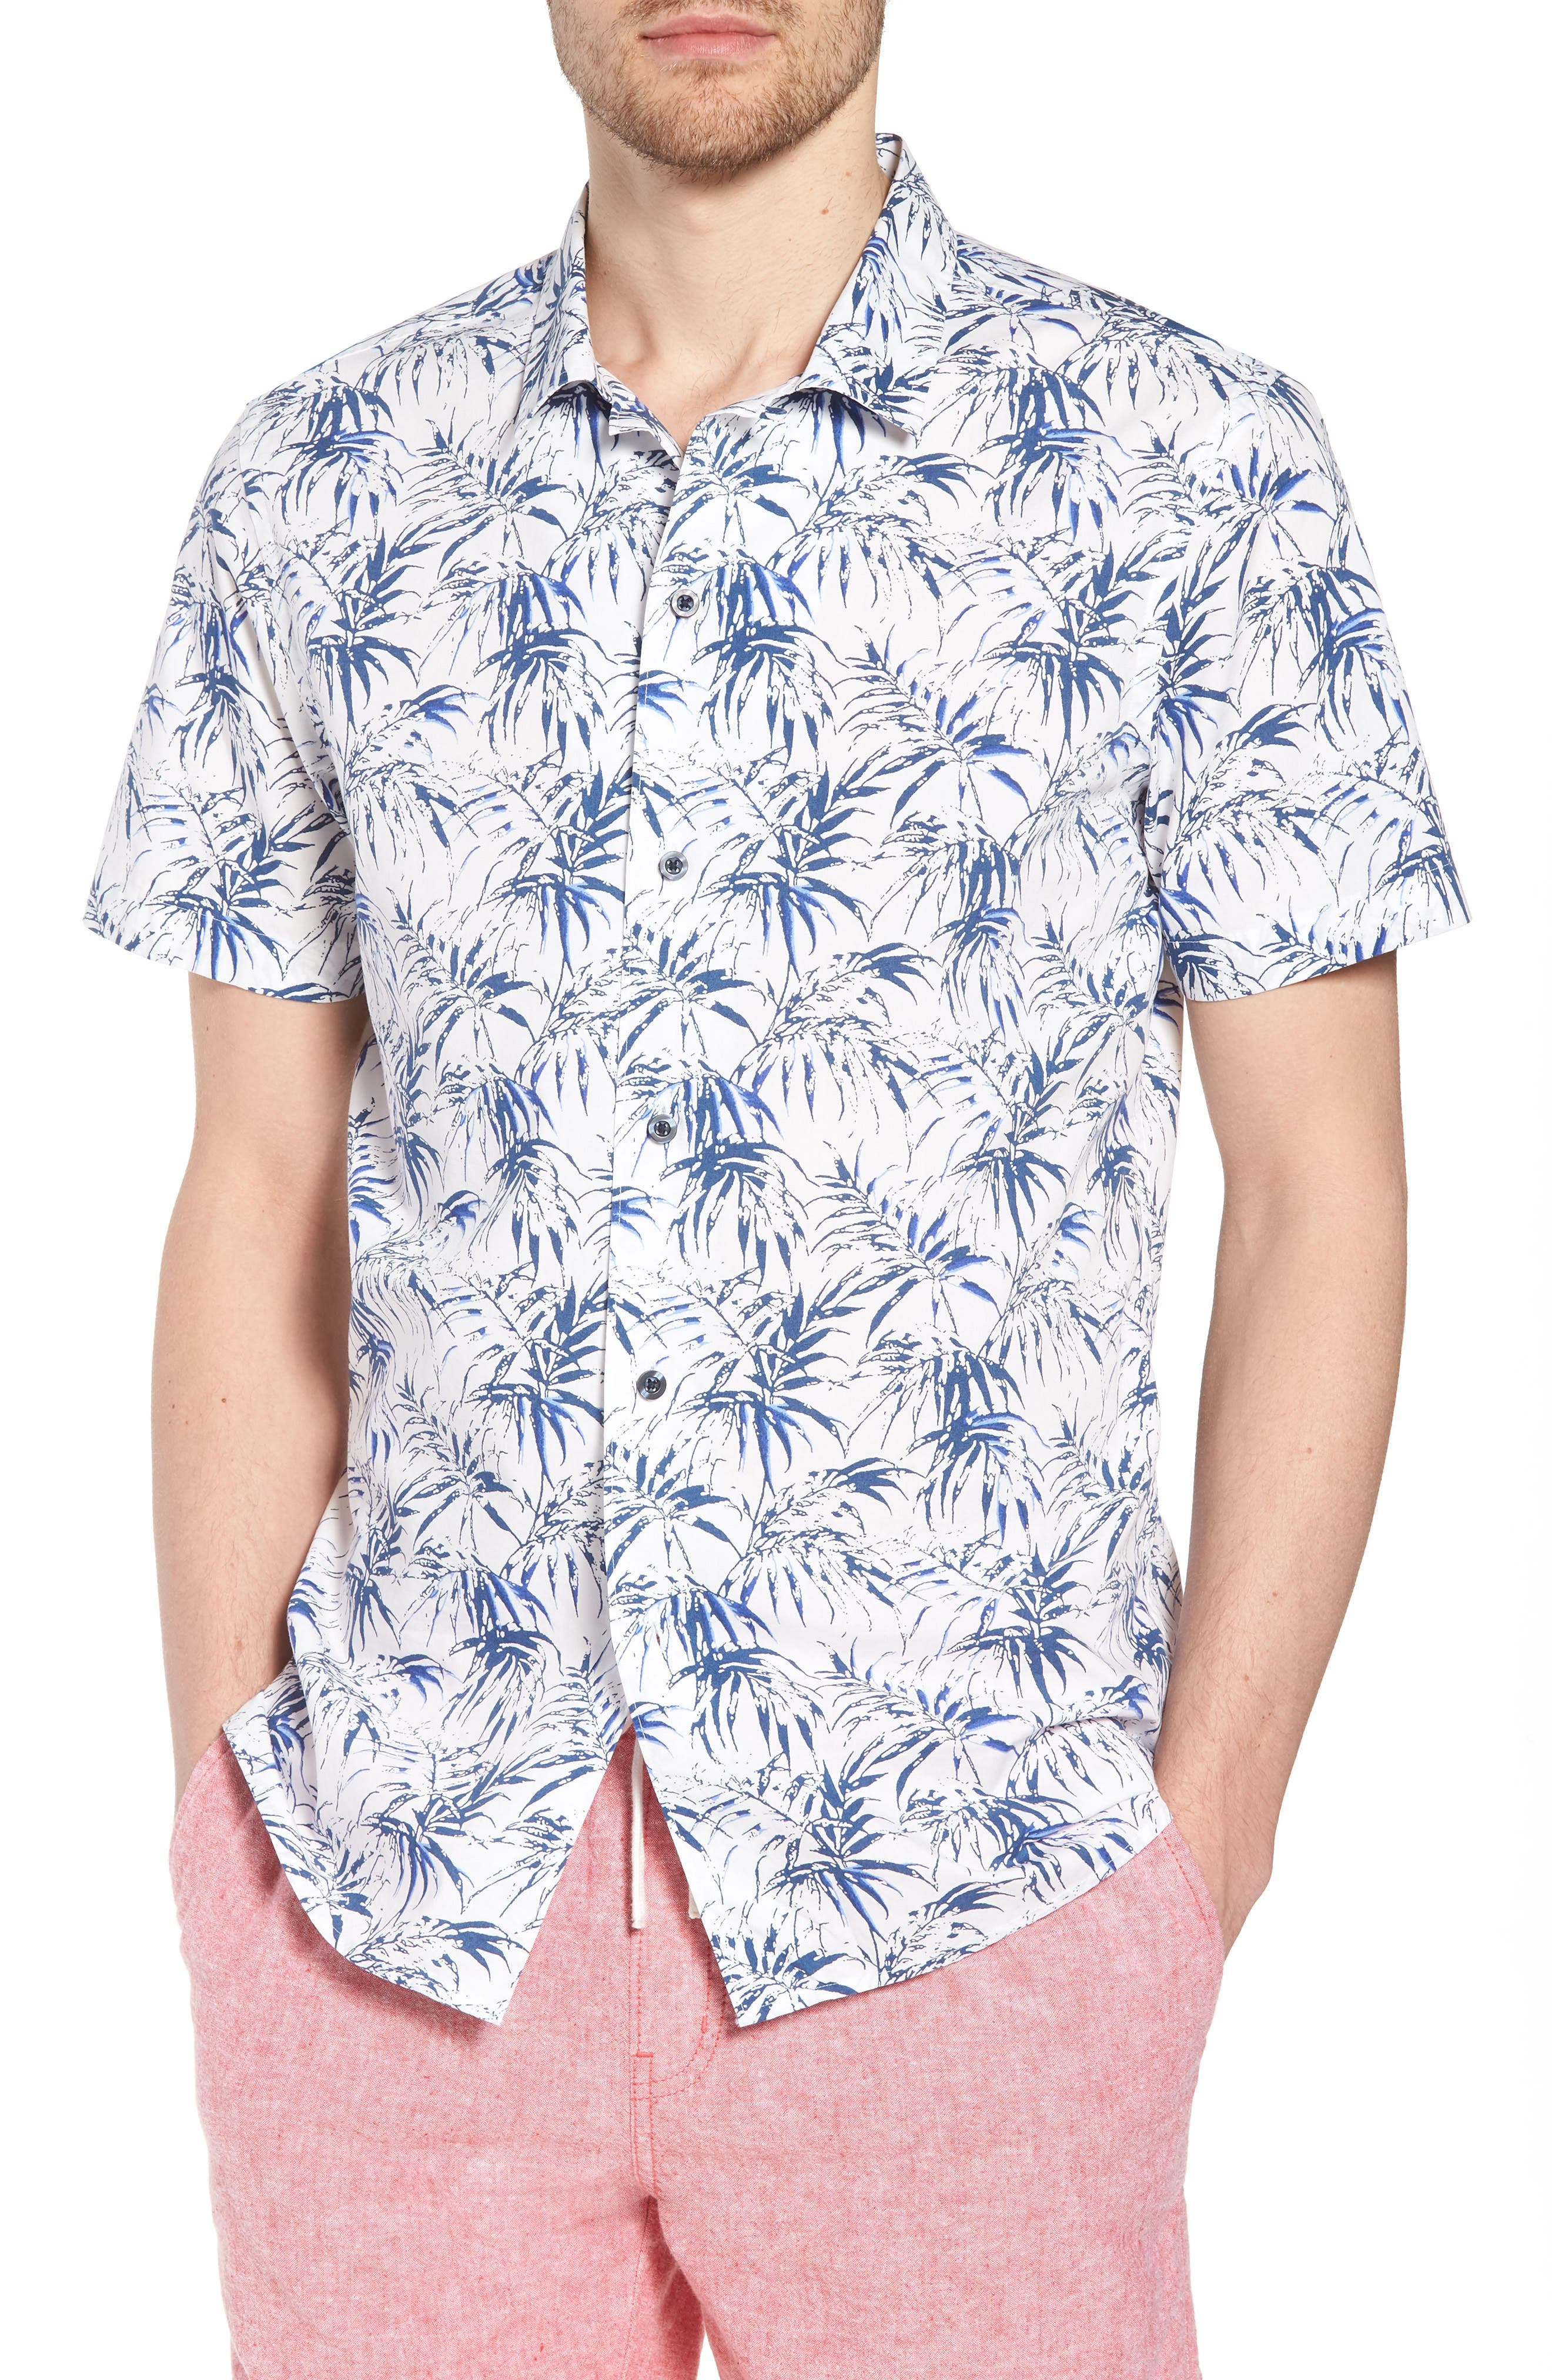 Trim Fit Palm Print Camp Shirt,                             Main thumbnail 1, color,                             White Navy Stamped Palms